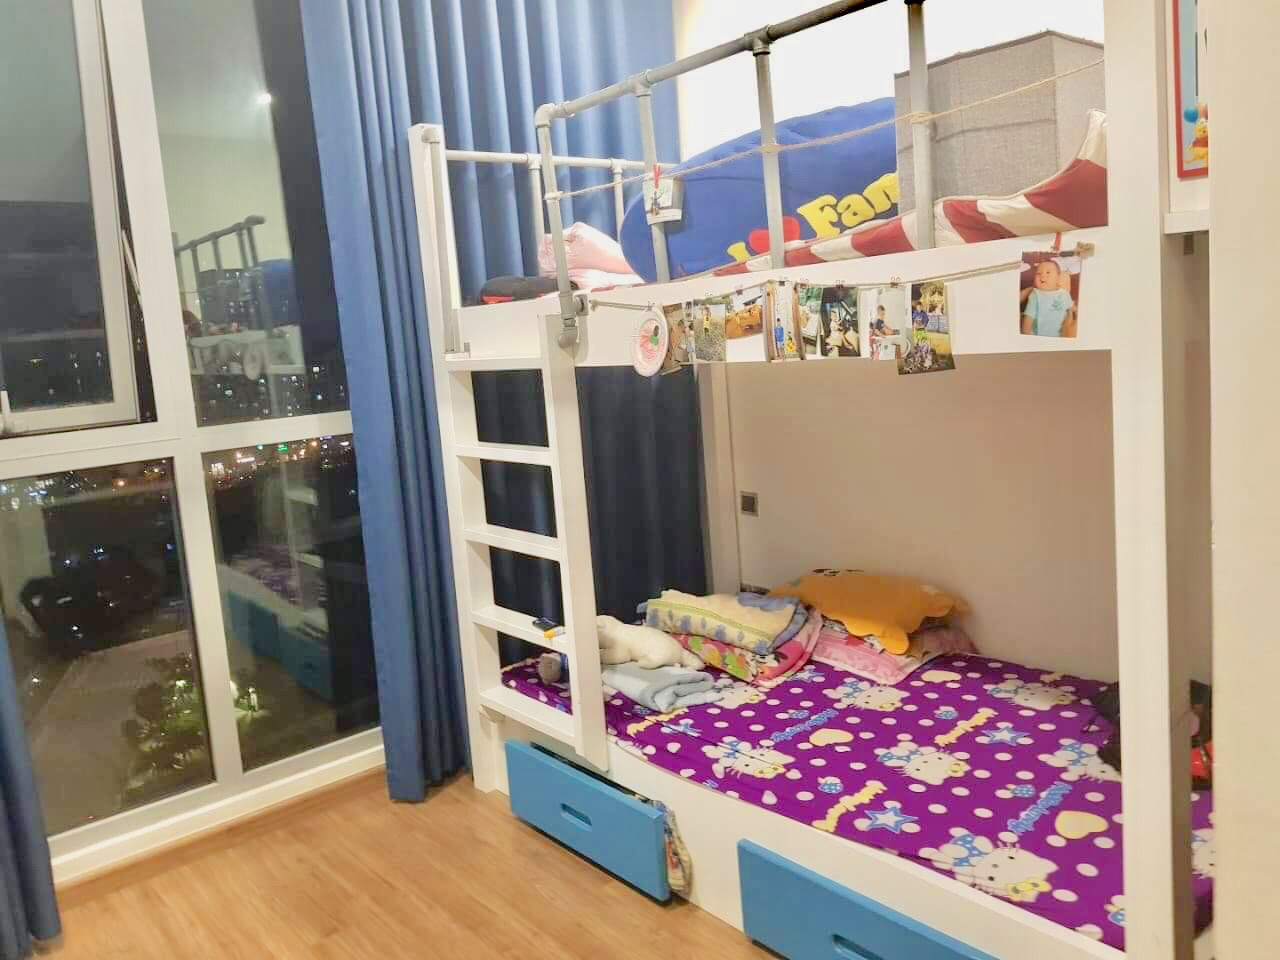 Apartment for rent BT105P5066 (4)